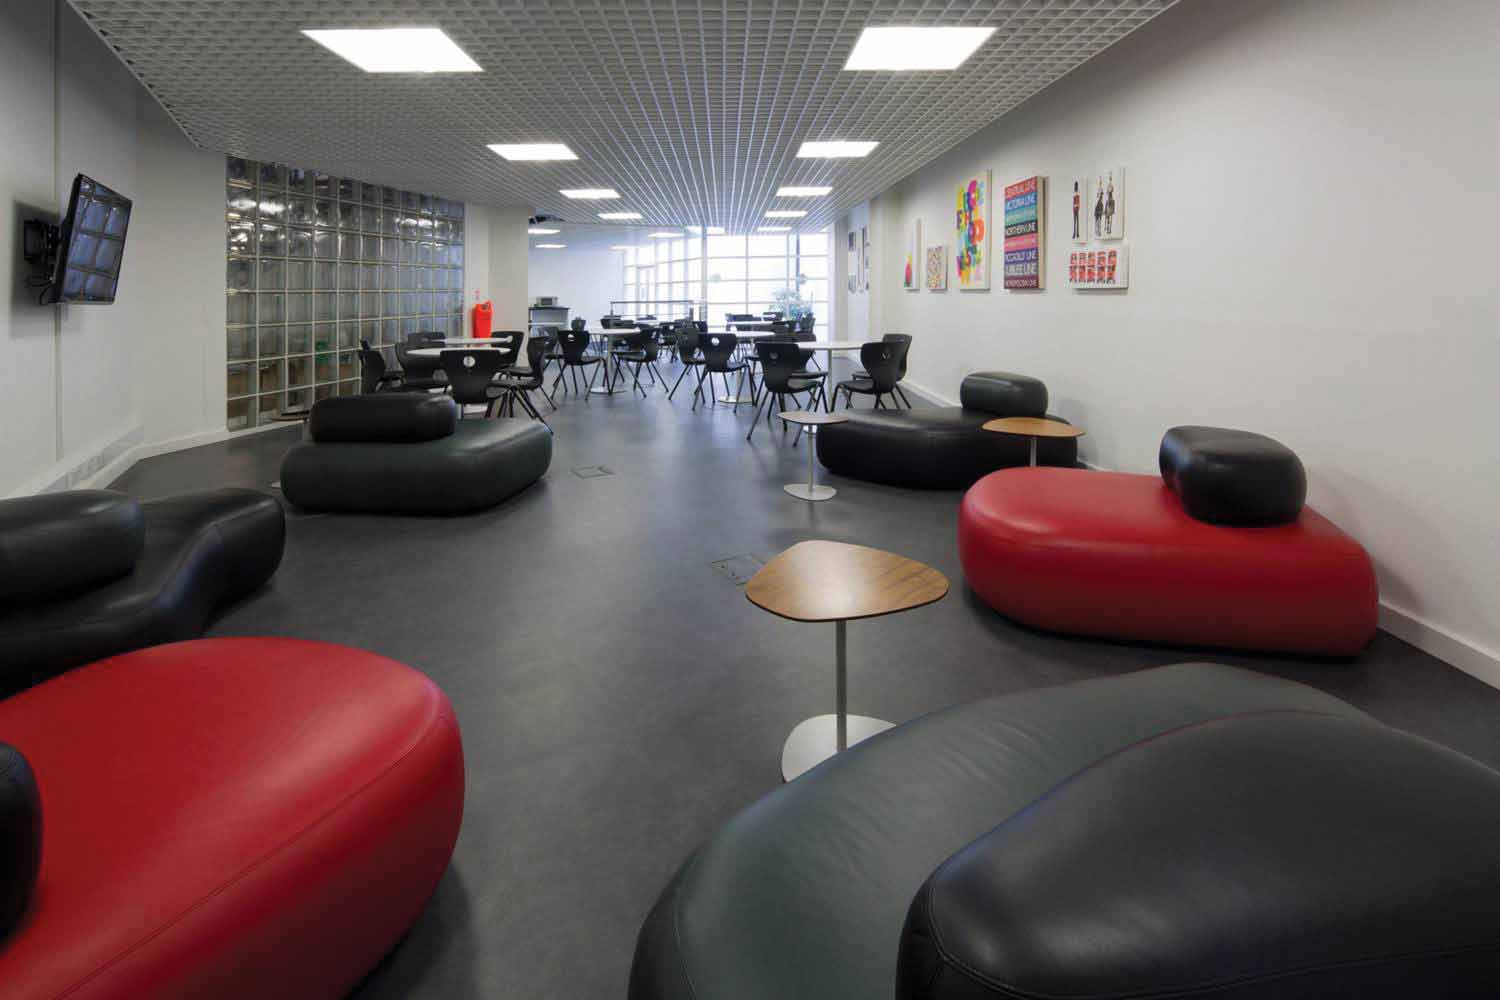 London Central_School_Student area_01